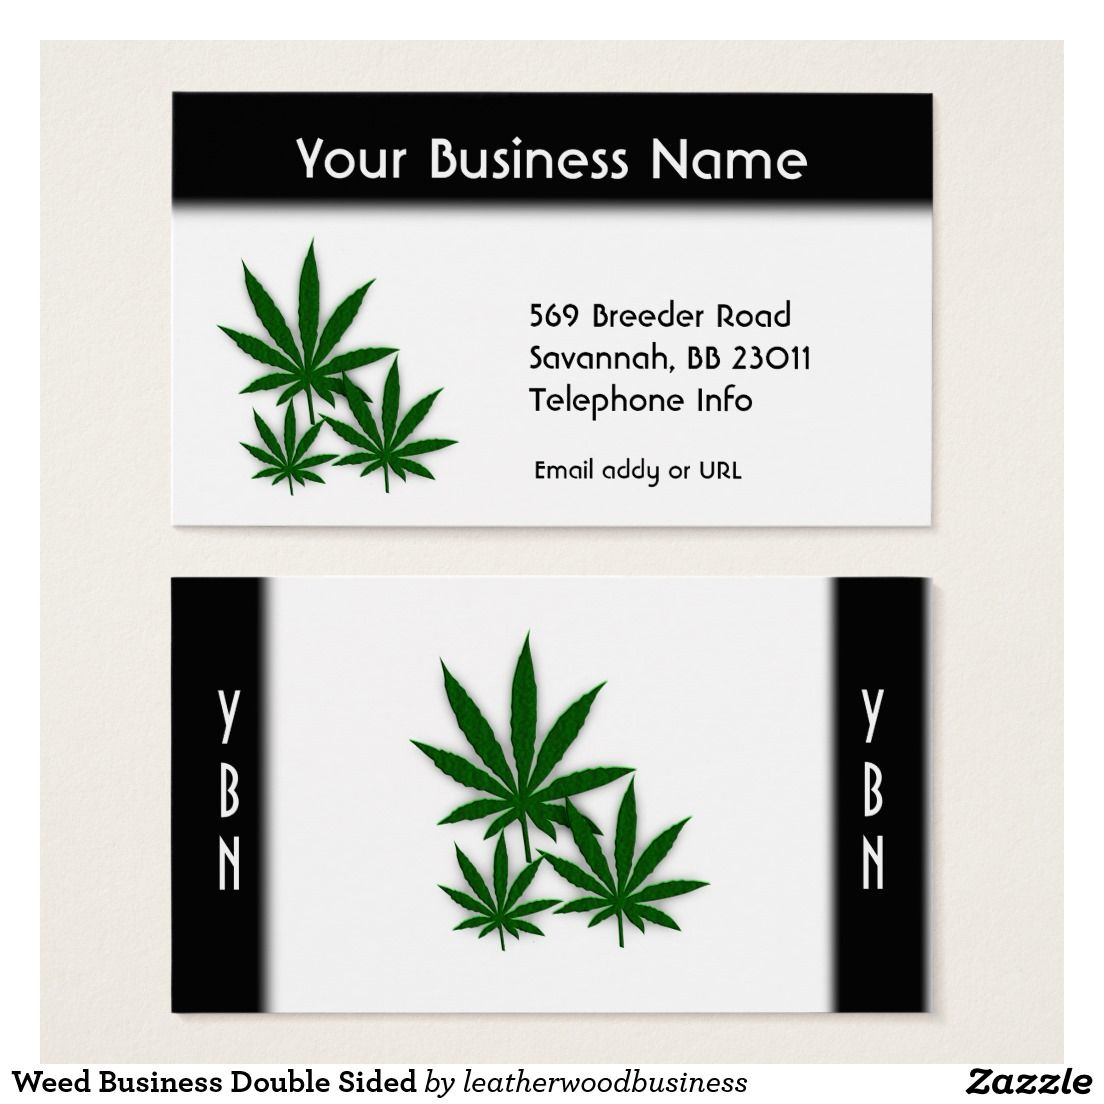 Weed business double sided business card weed pinterest weed business double sided business card magicingreecefo Choice Image